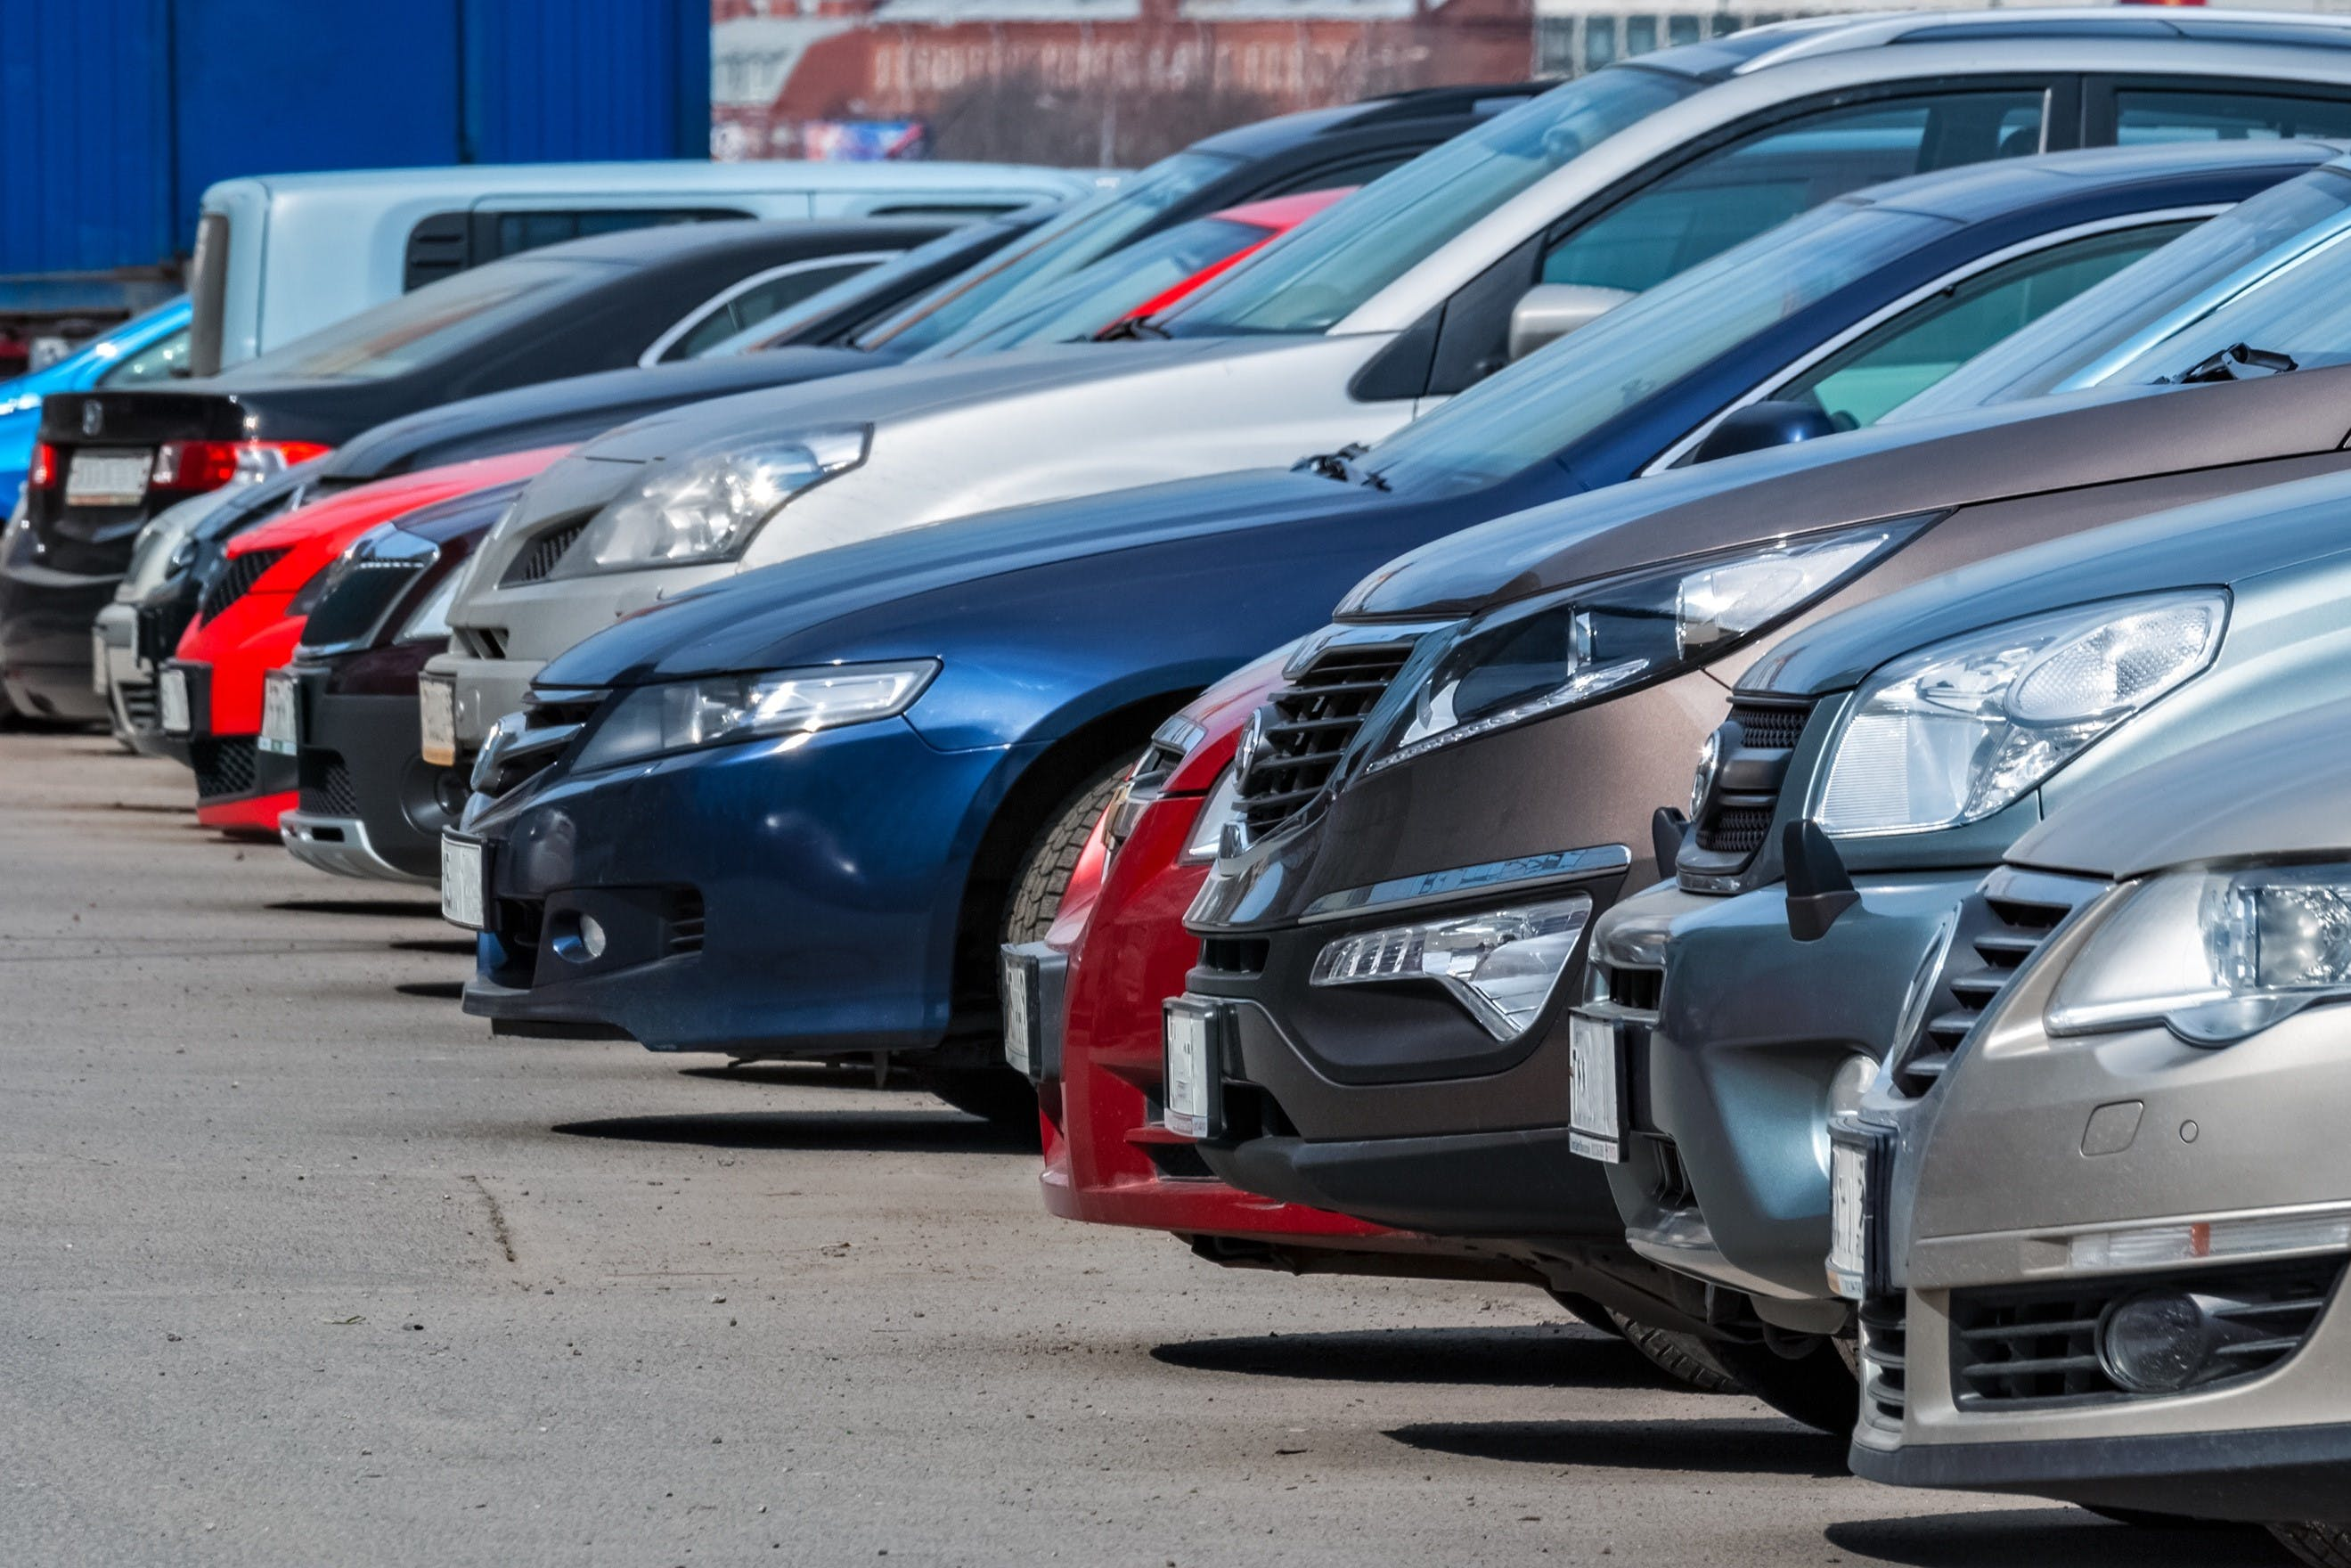 CARFAX: 1 in 6 Used Cars for Sale Has Open Recall